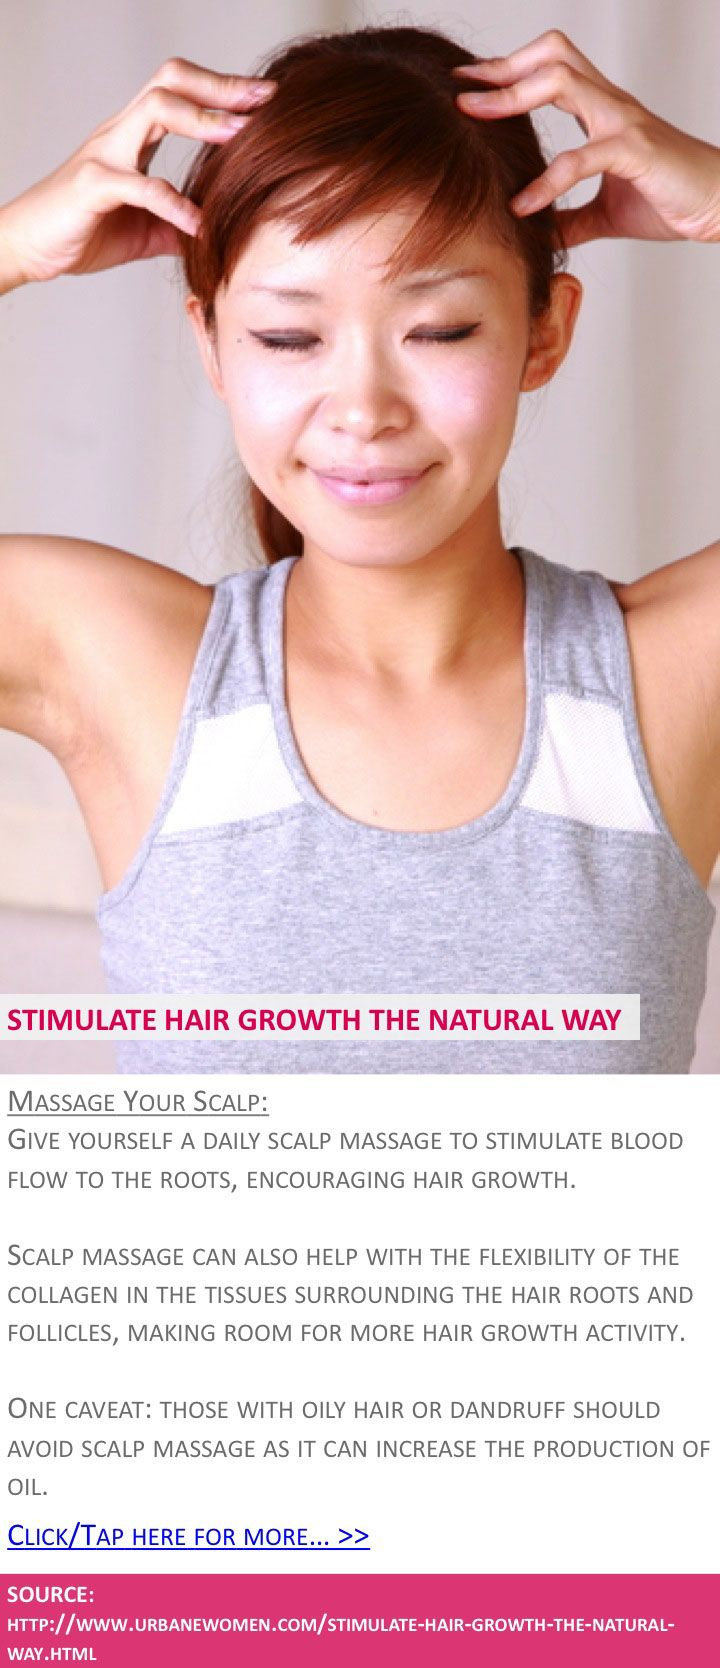 Stimulate hair growth the natural way - Massage your scalp - Click for more: http://www.urbanewomen.com/stimulate-hair-growth-the-natural-way.html